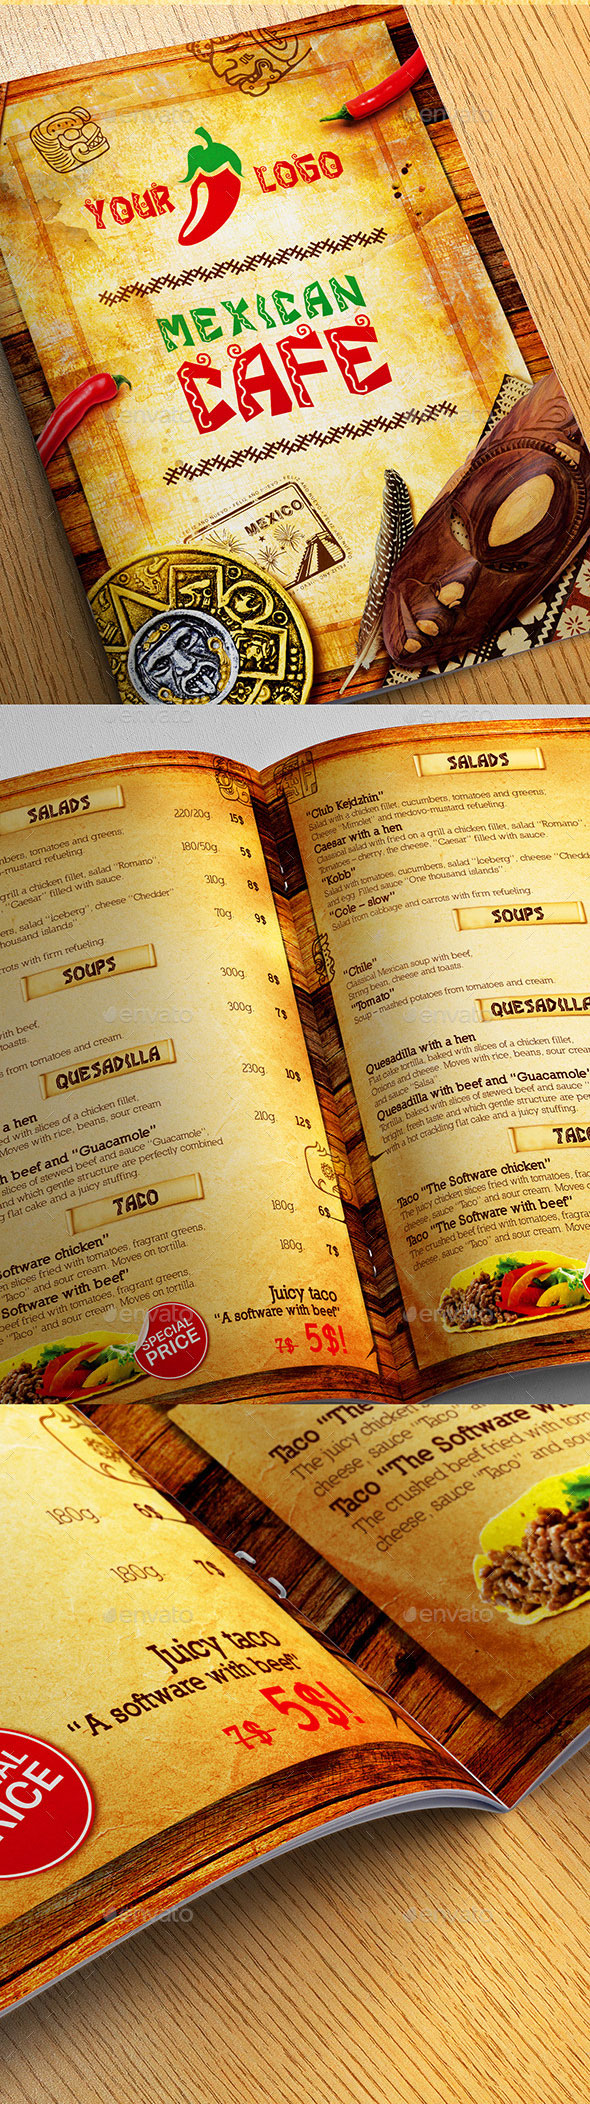 Mexican Cafe Menu Template